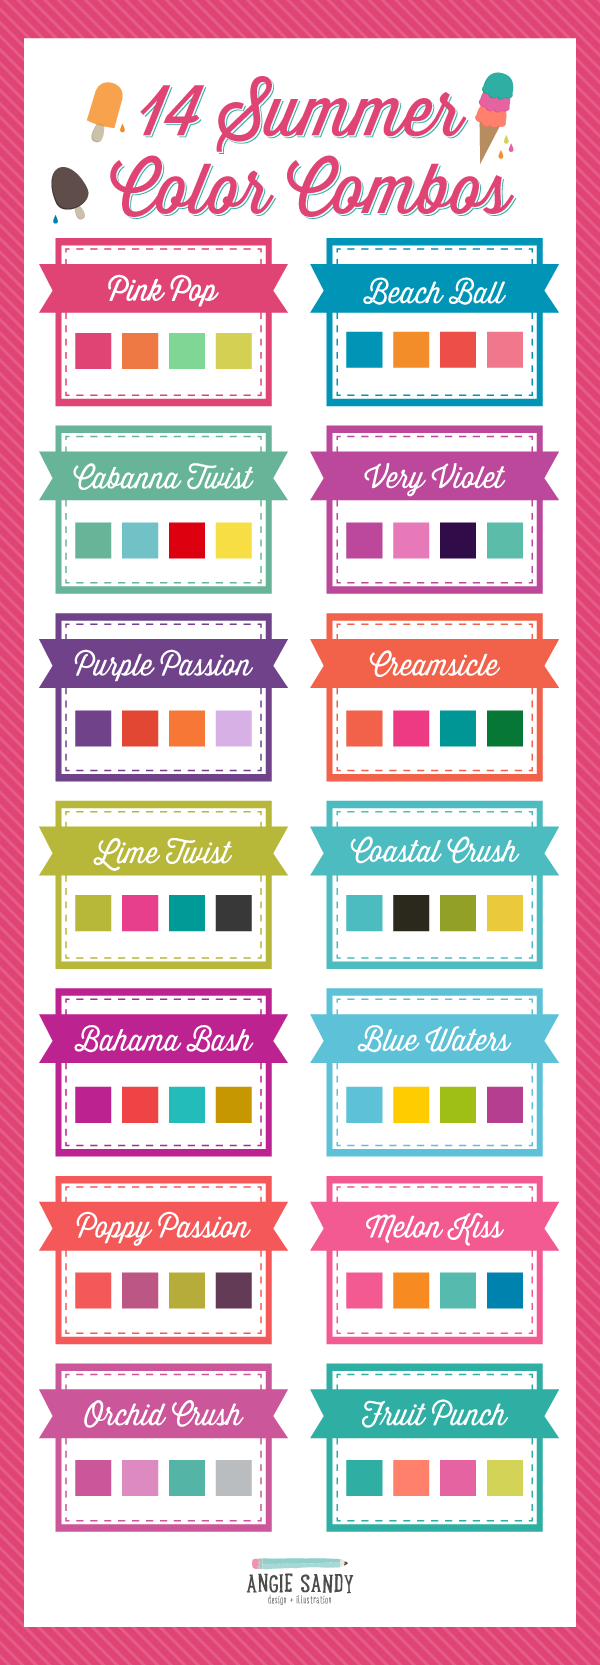 14 Summer Color Palettes | fashion | Pinterest | Color combos, Mary ...